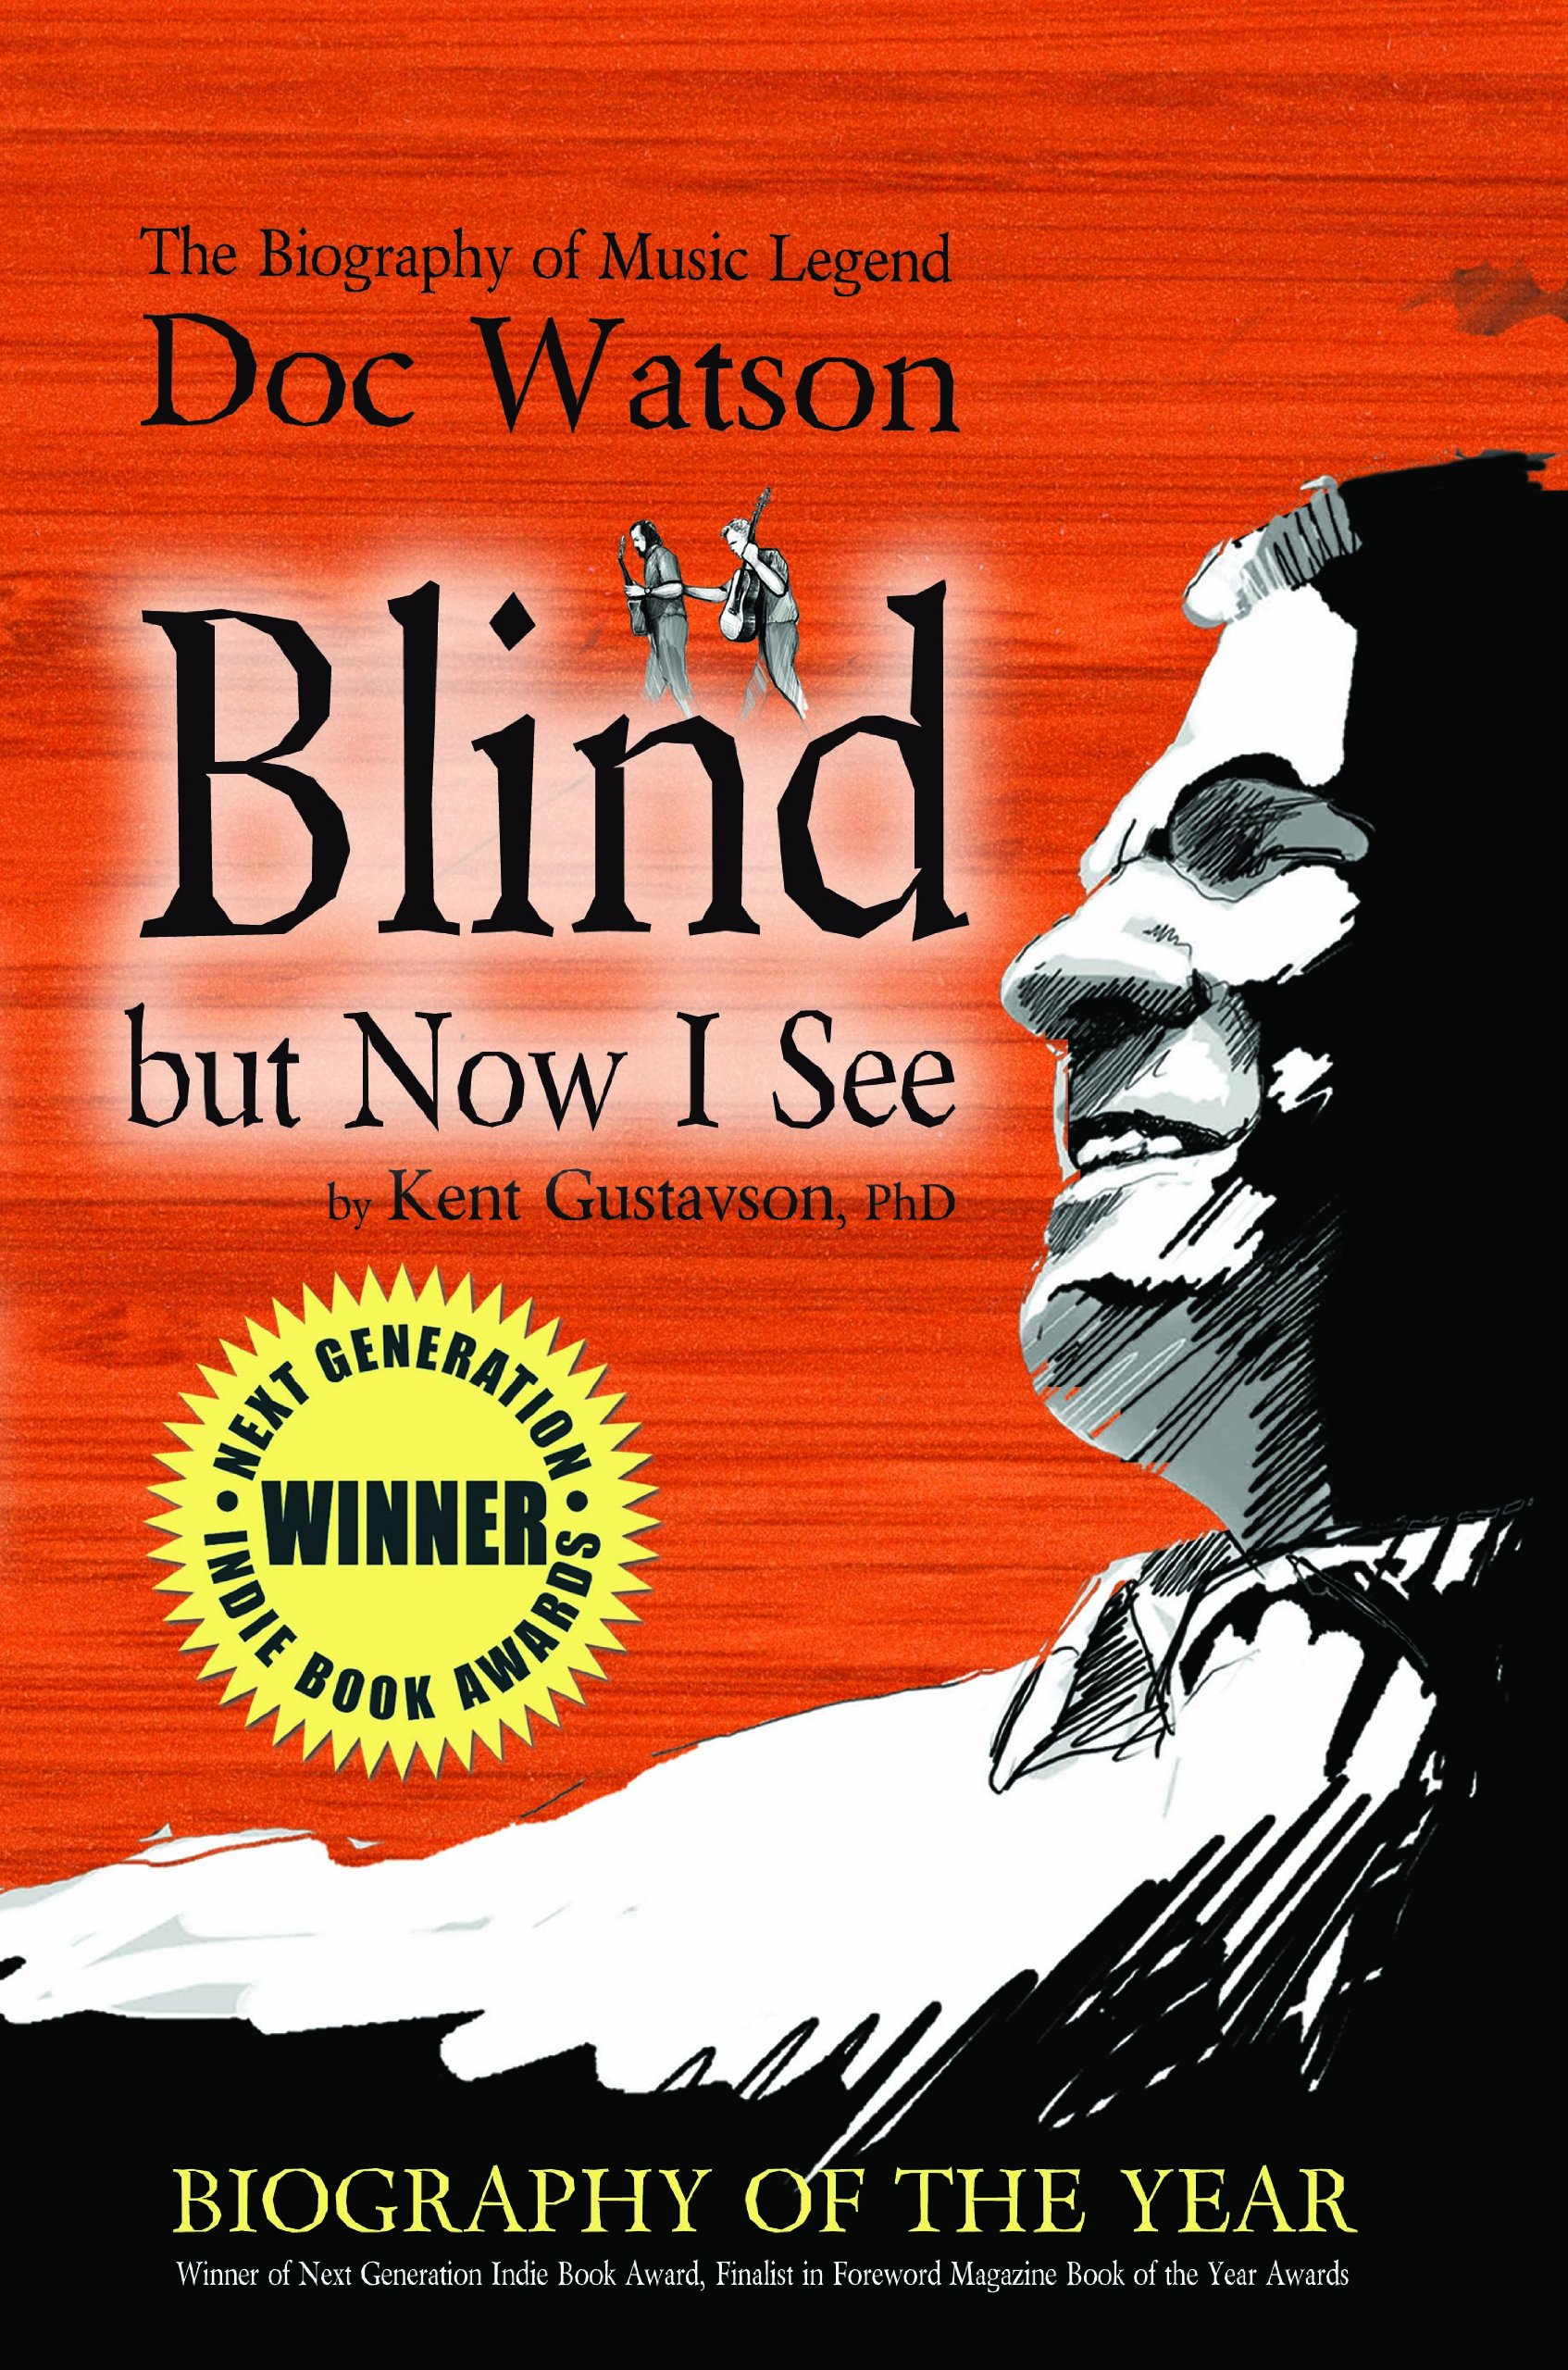 Blind But Now I See  The Biography of Music Legend Doc Watson  Kent  Gustavson  9781937753009  Amazon com  BooksBlind But Now I See  The Biography of Music Legend Doc Watson  . Luminary Lighting John Kent. Home Design Ideas